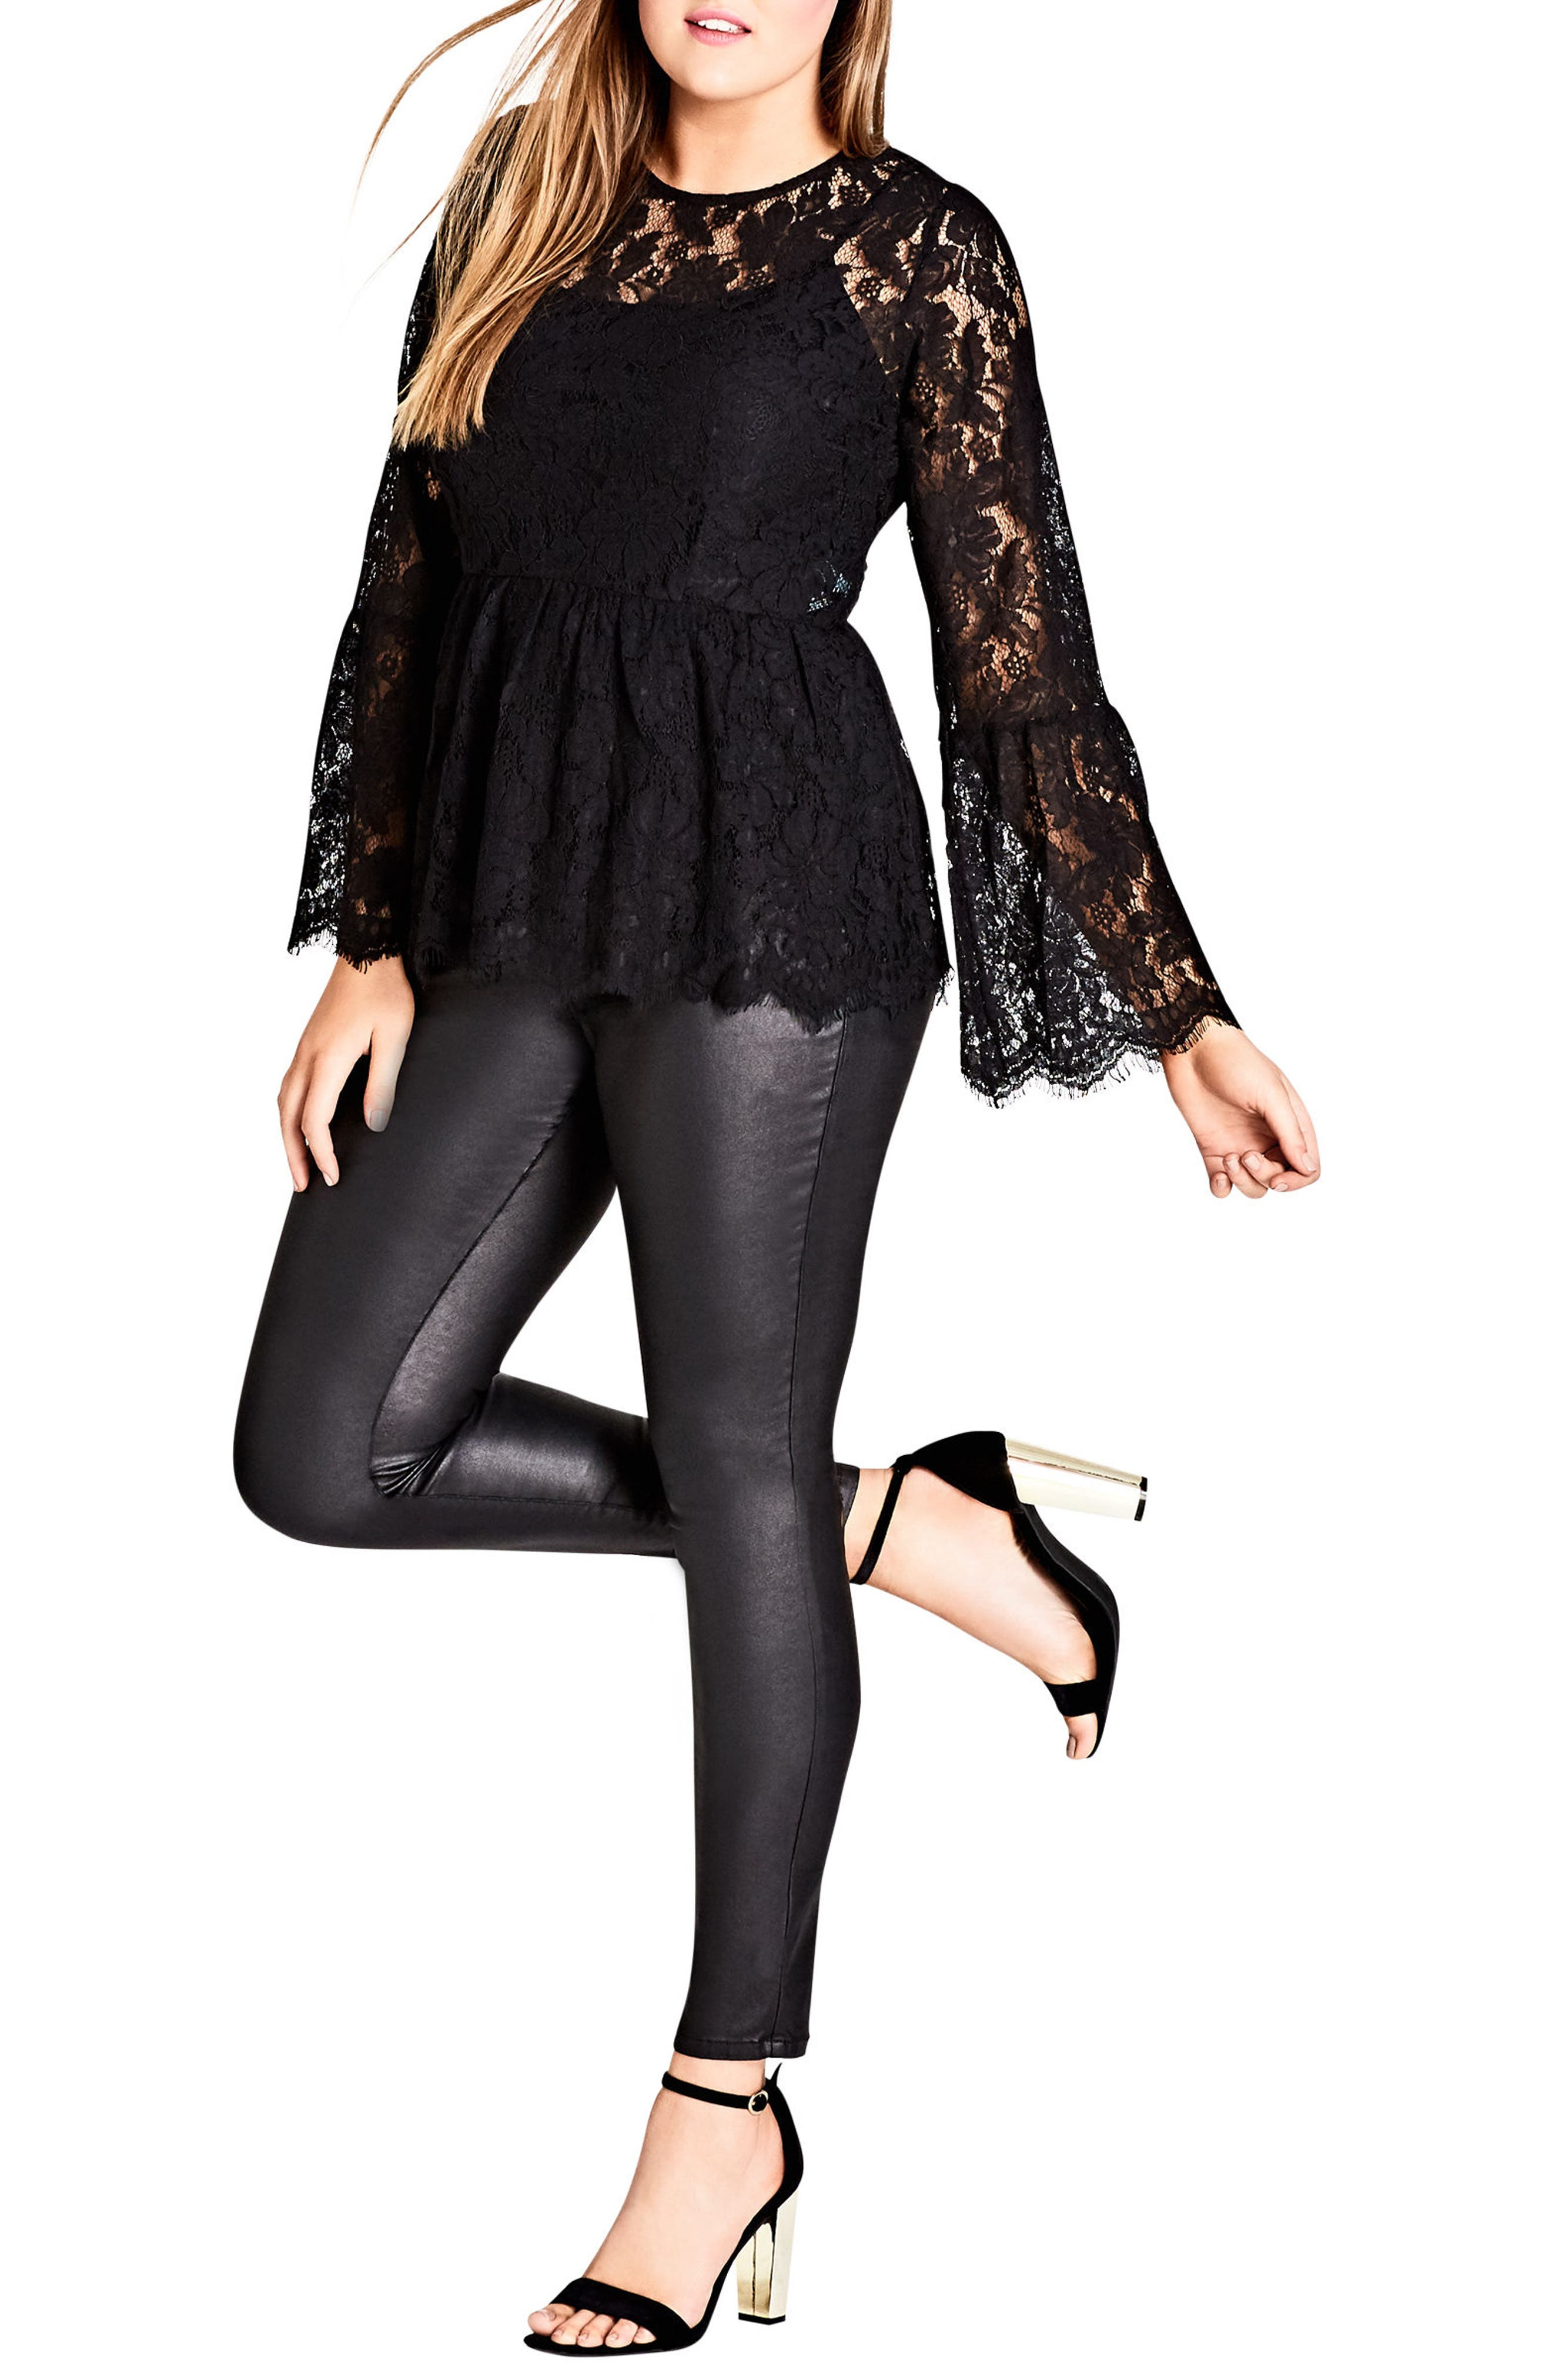 Alternate Image 1 Selected - City Chic Divine Lace Top (Plus Size)